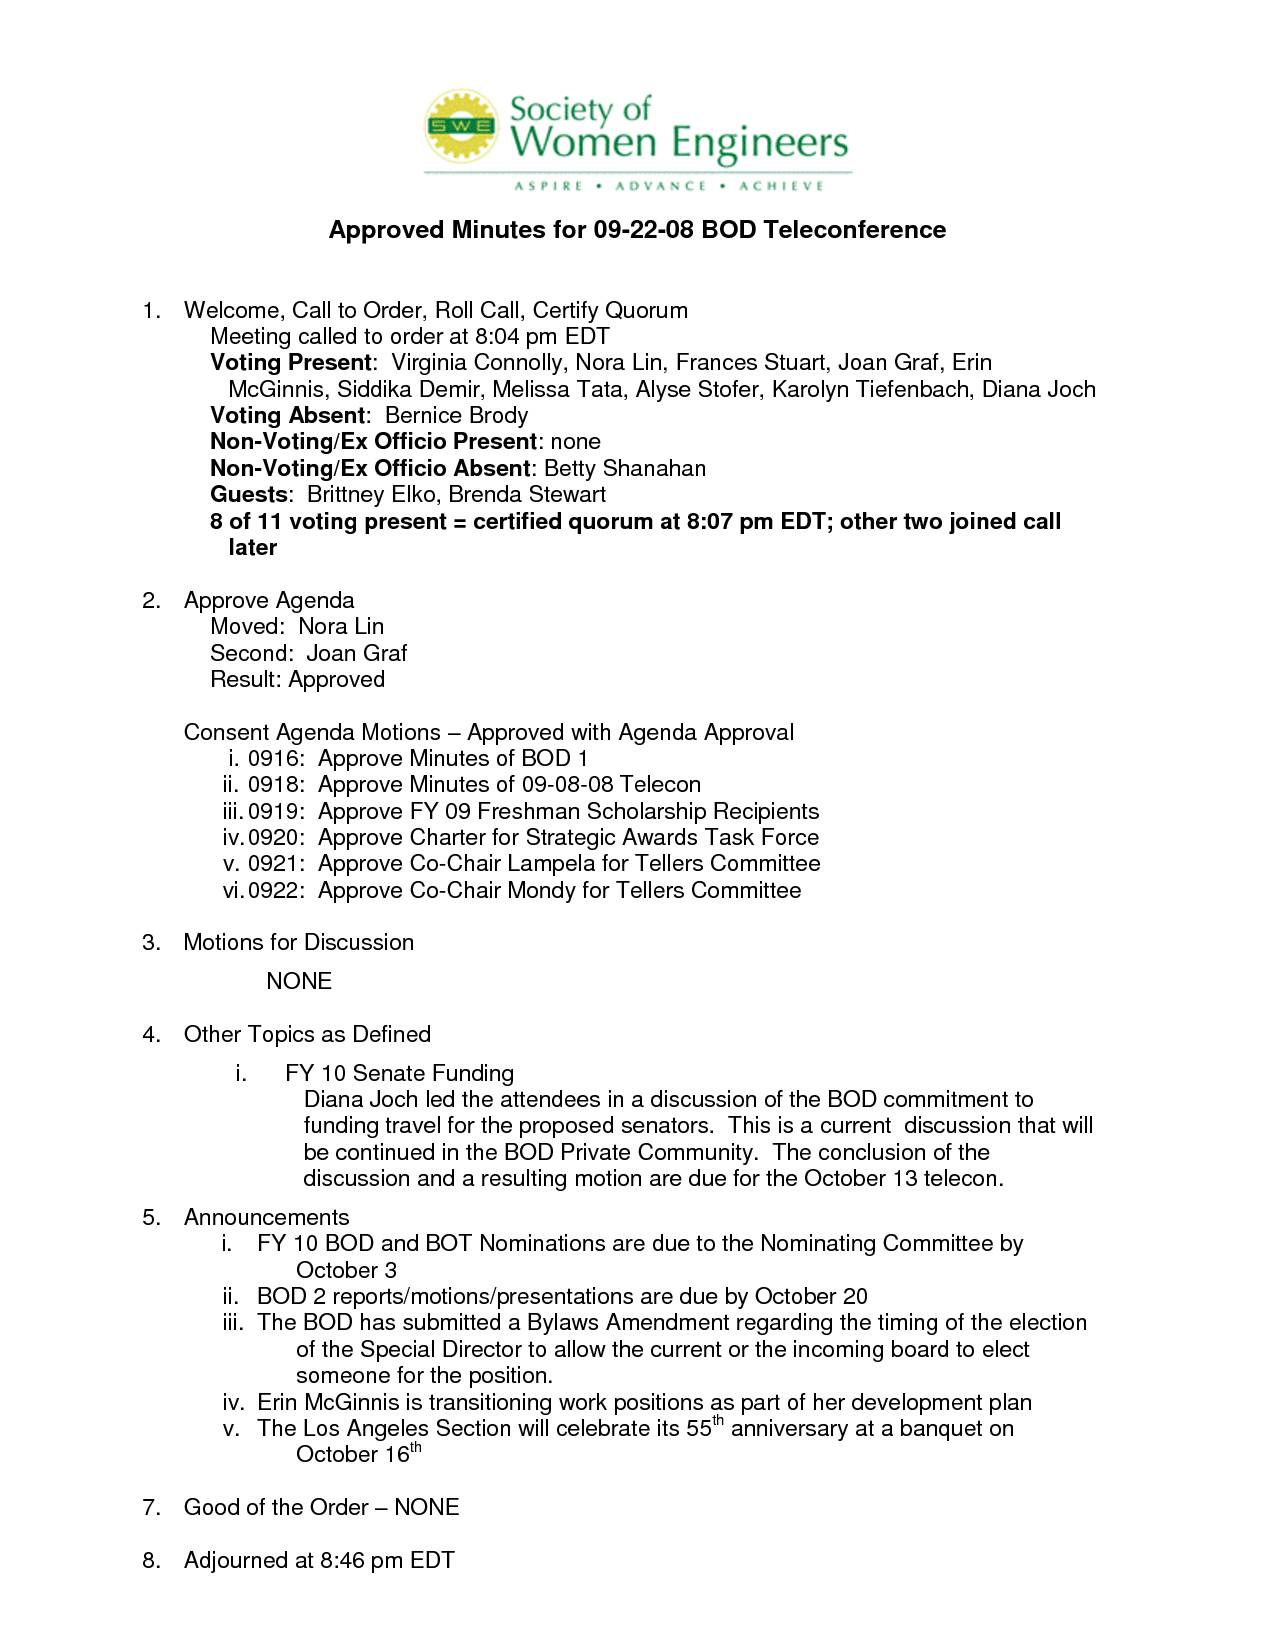 Homeowners Association Sample Bylaws